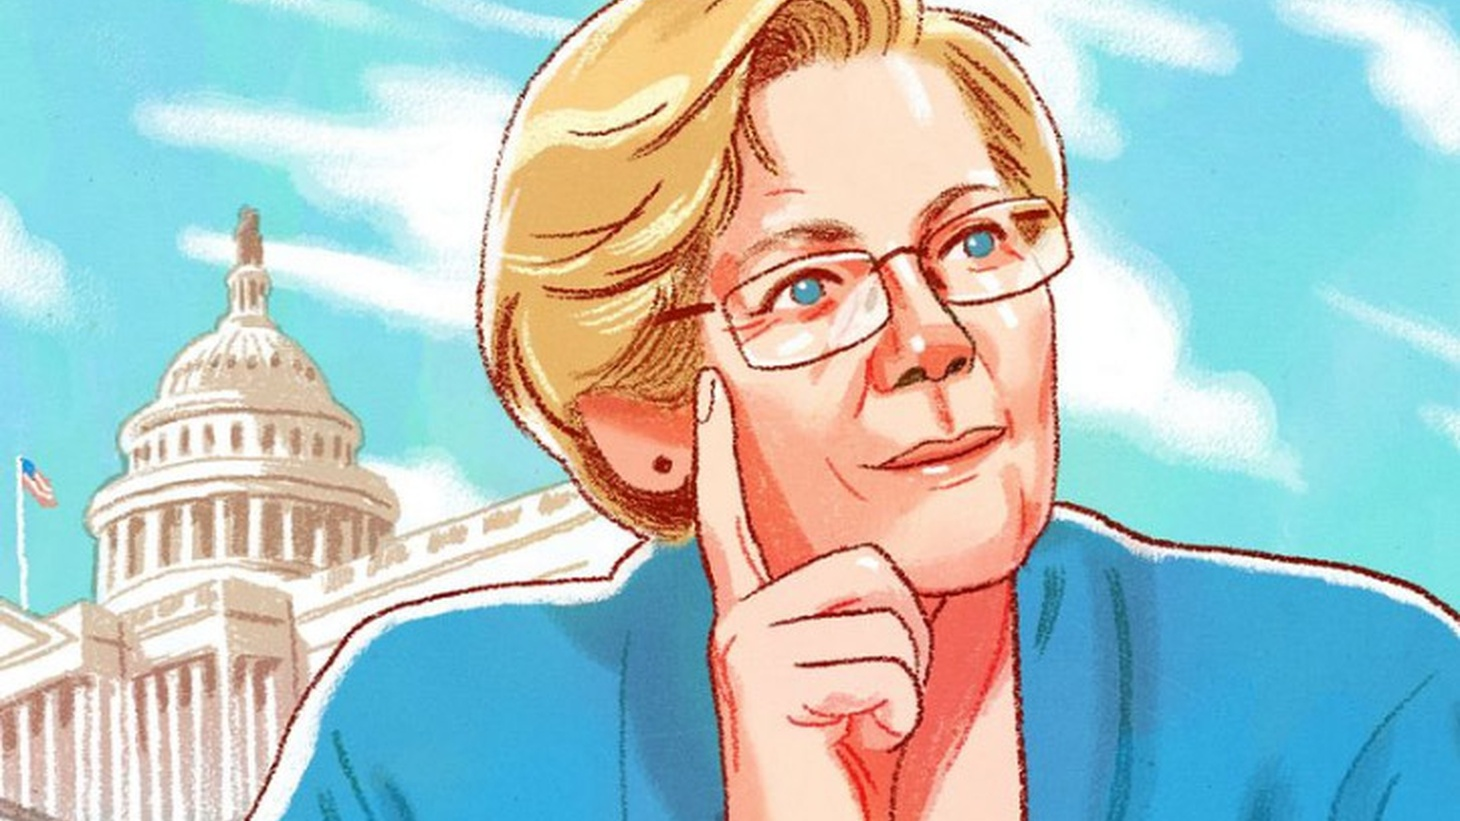 Senator Elizabeth Warren discusses the future of the Democratic Party, and explains how to negotiate with Donald Trump.